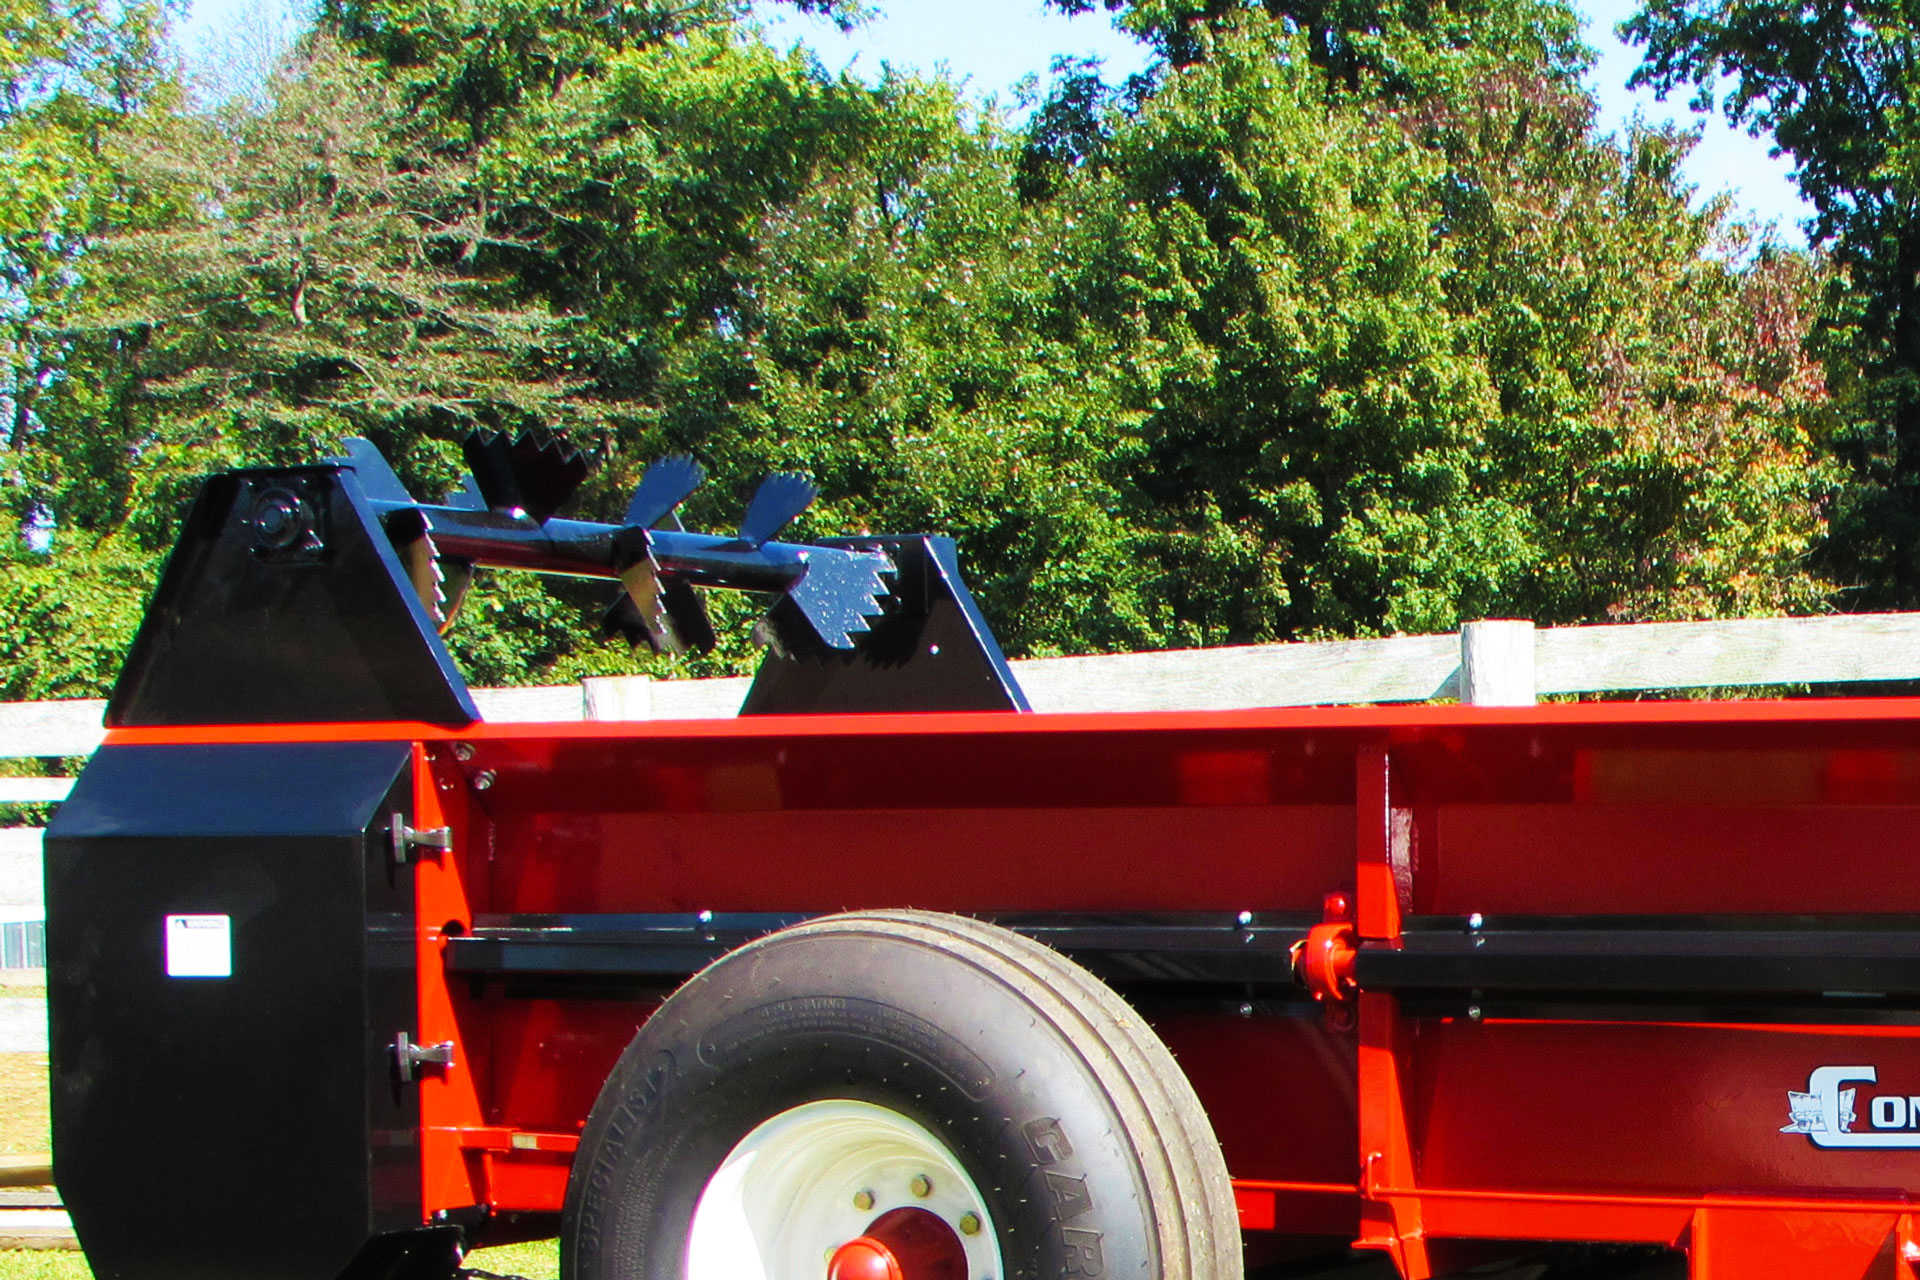 PTO tow behind manure spreader with optional top beater.